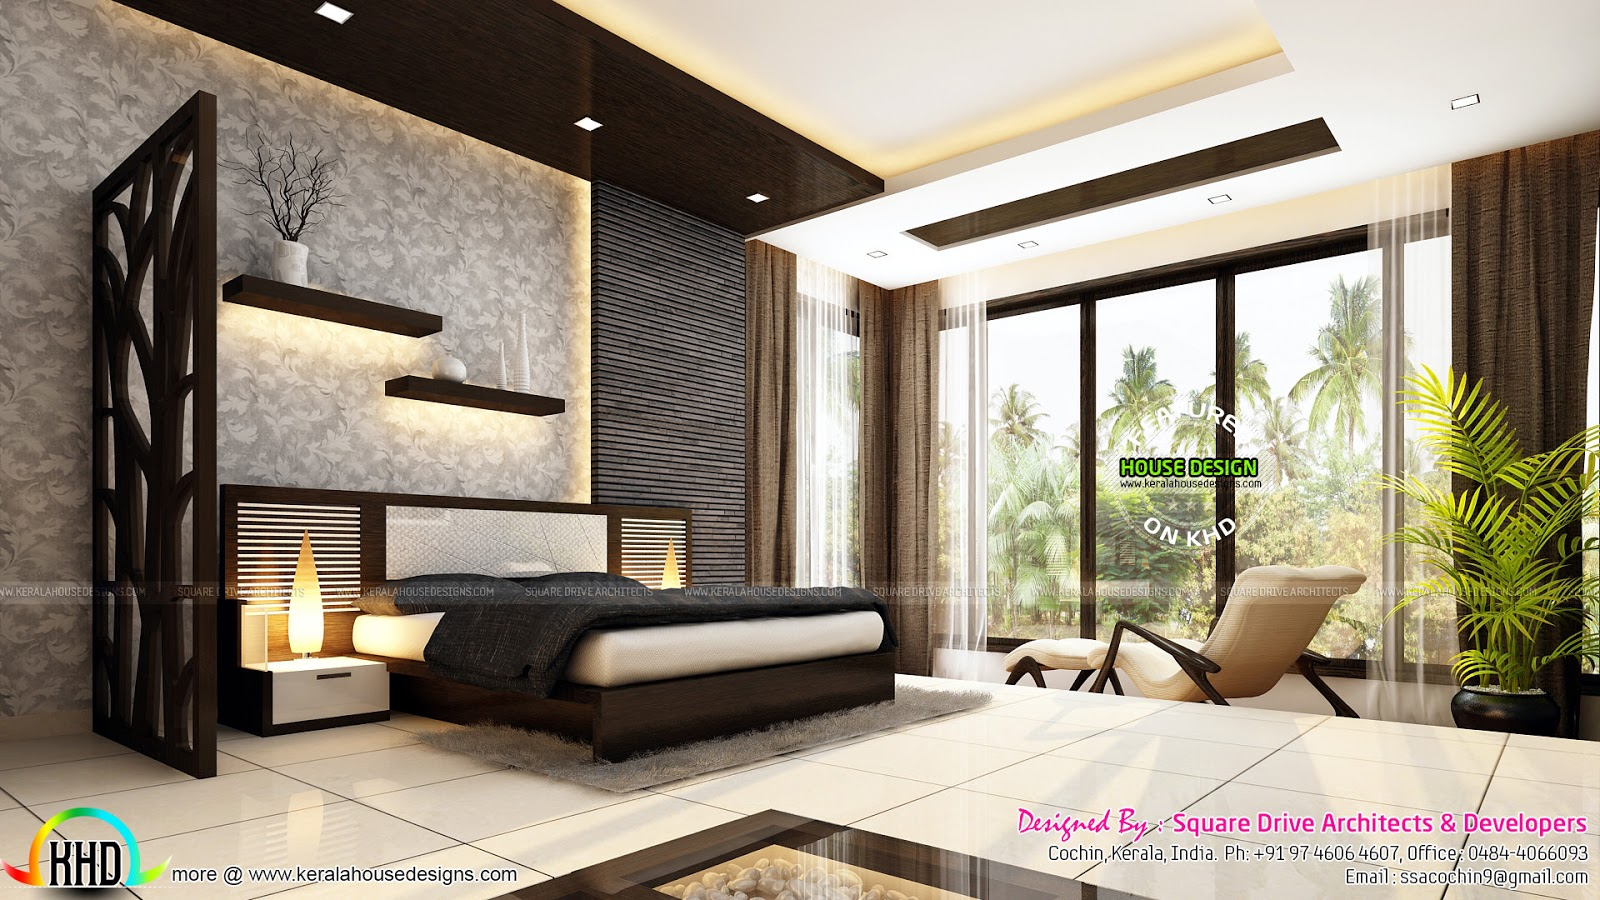 Very beautiful modern interior designs kerala home for Interior design small bedroom indian